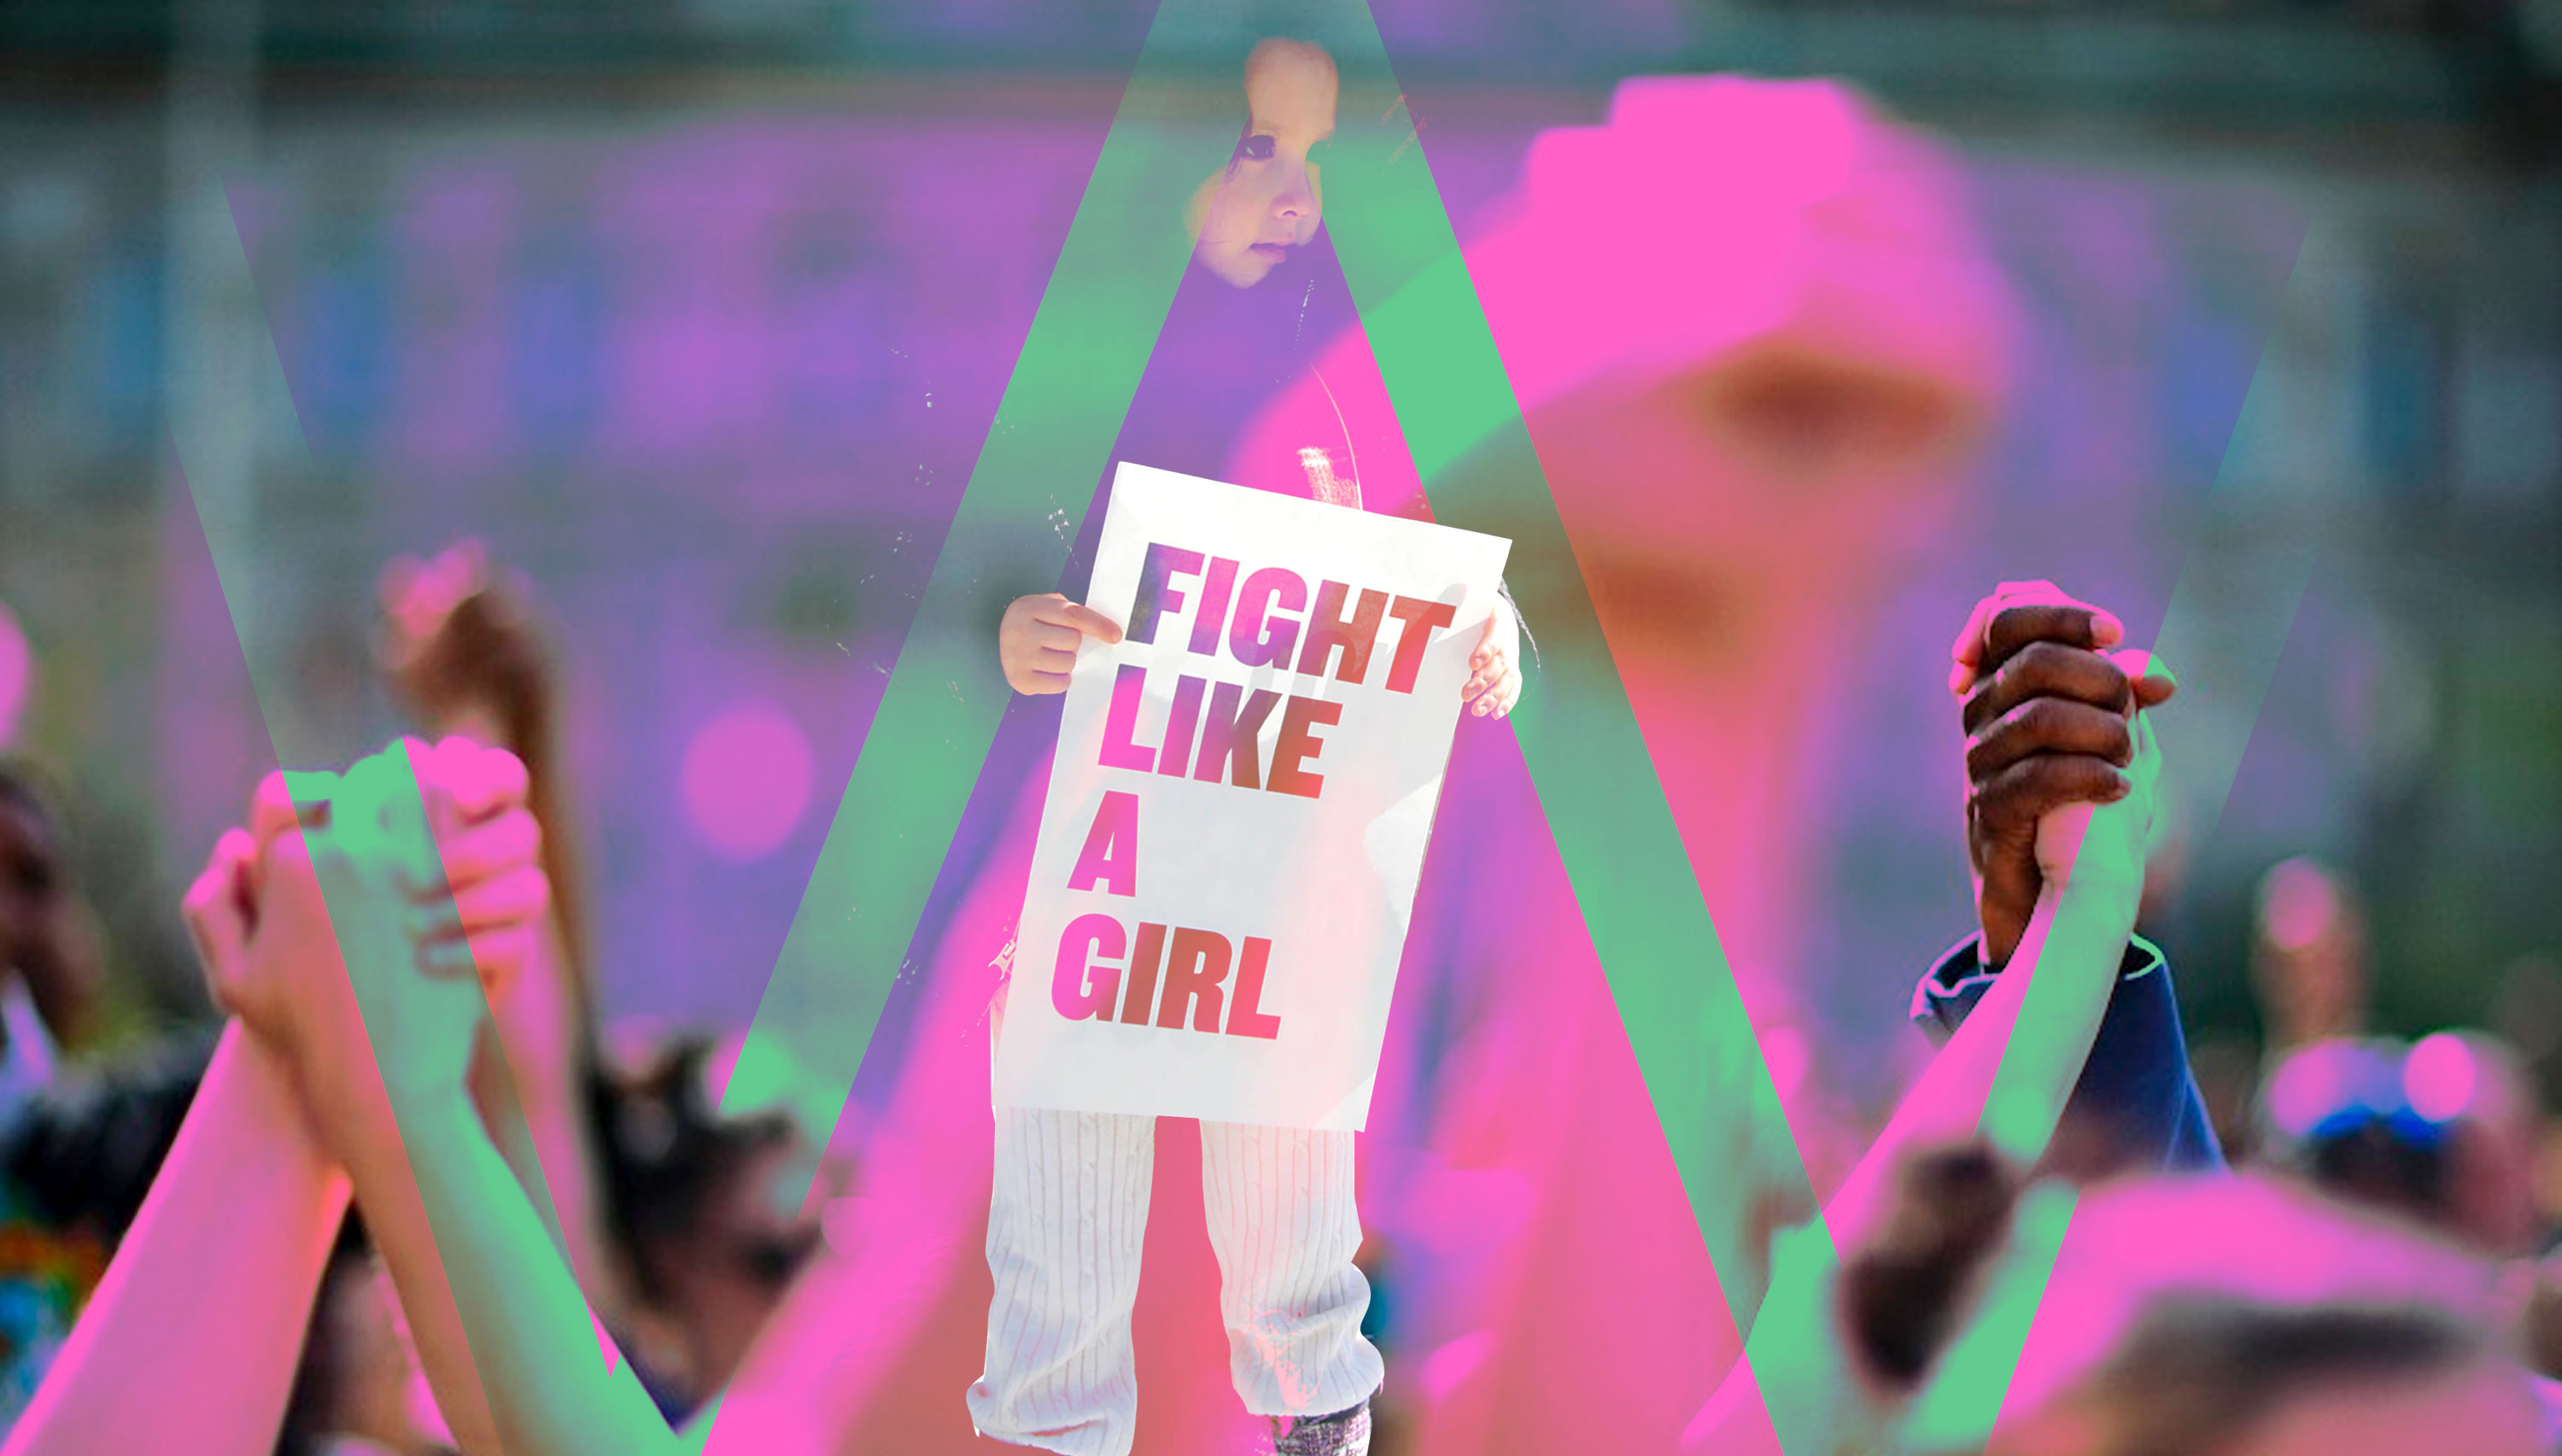 A Girl in an Event Holding a Poster Saying Fight Like a Girl